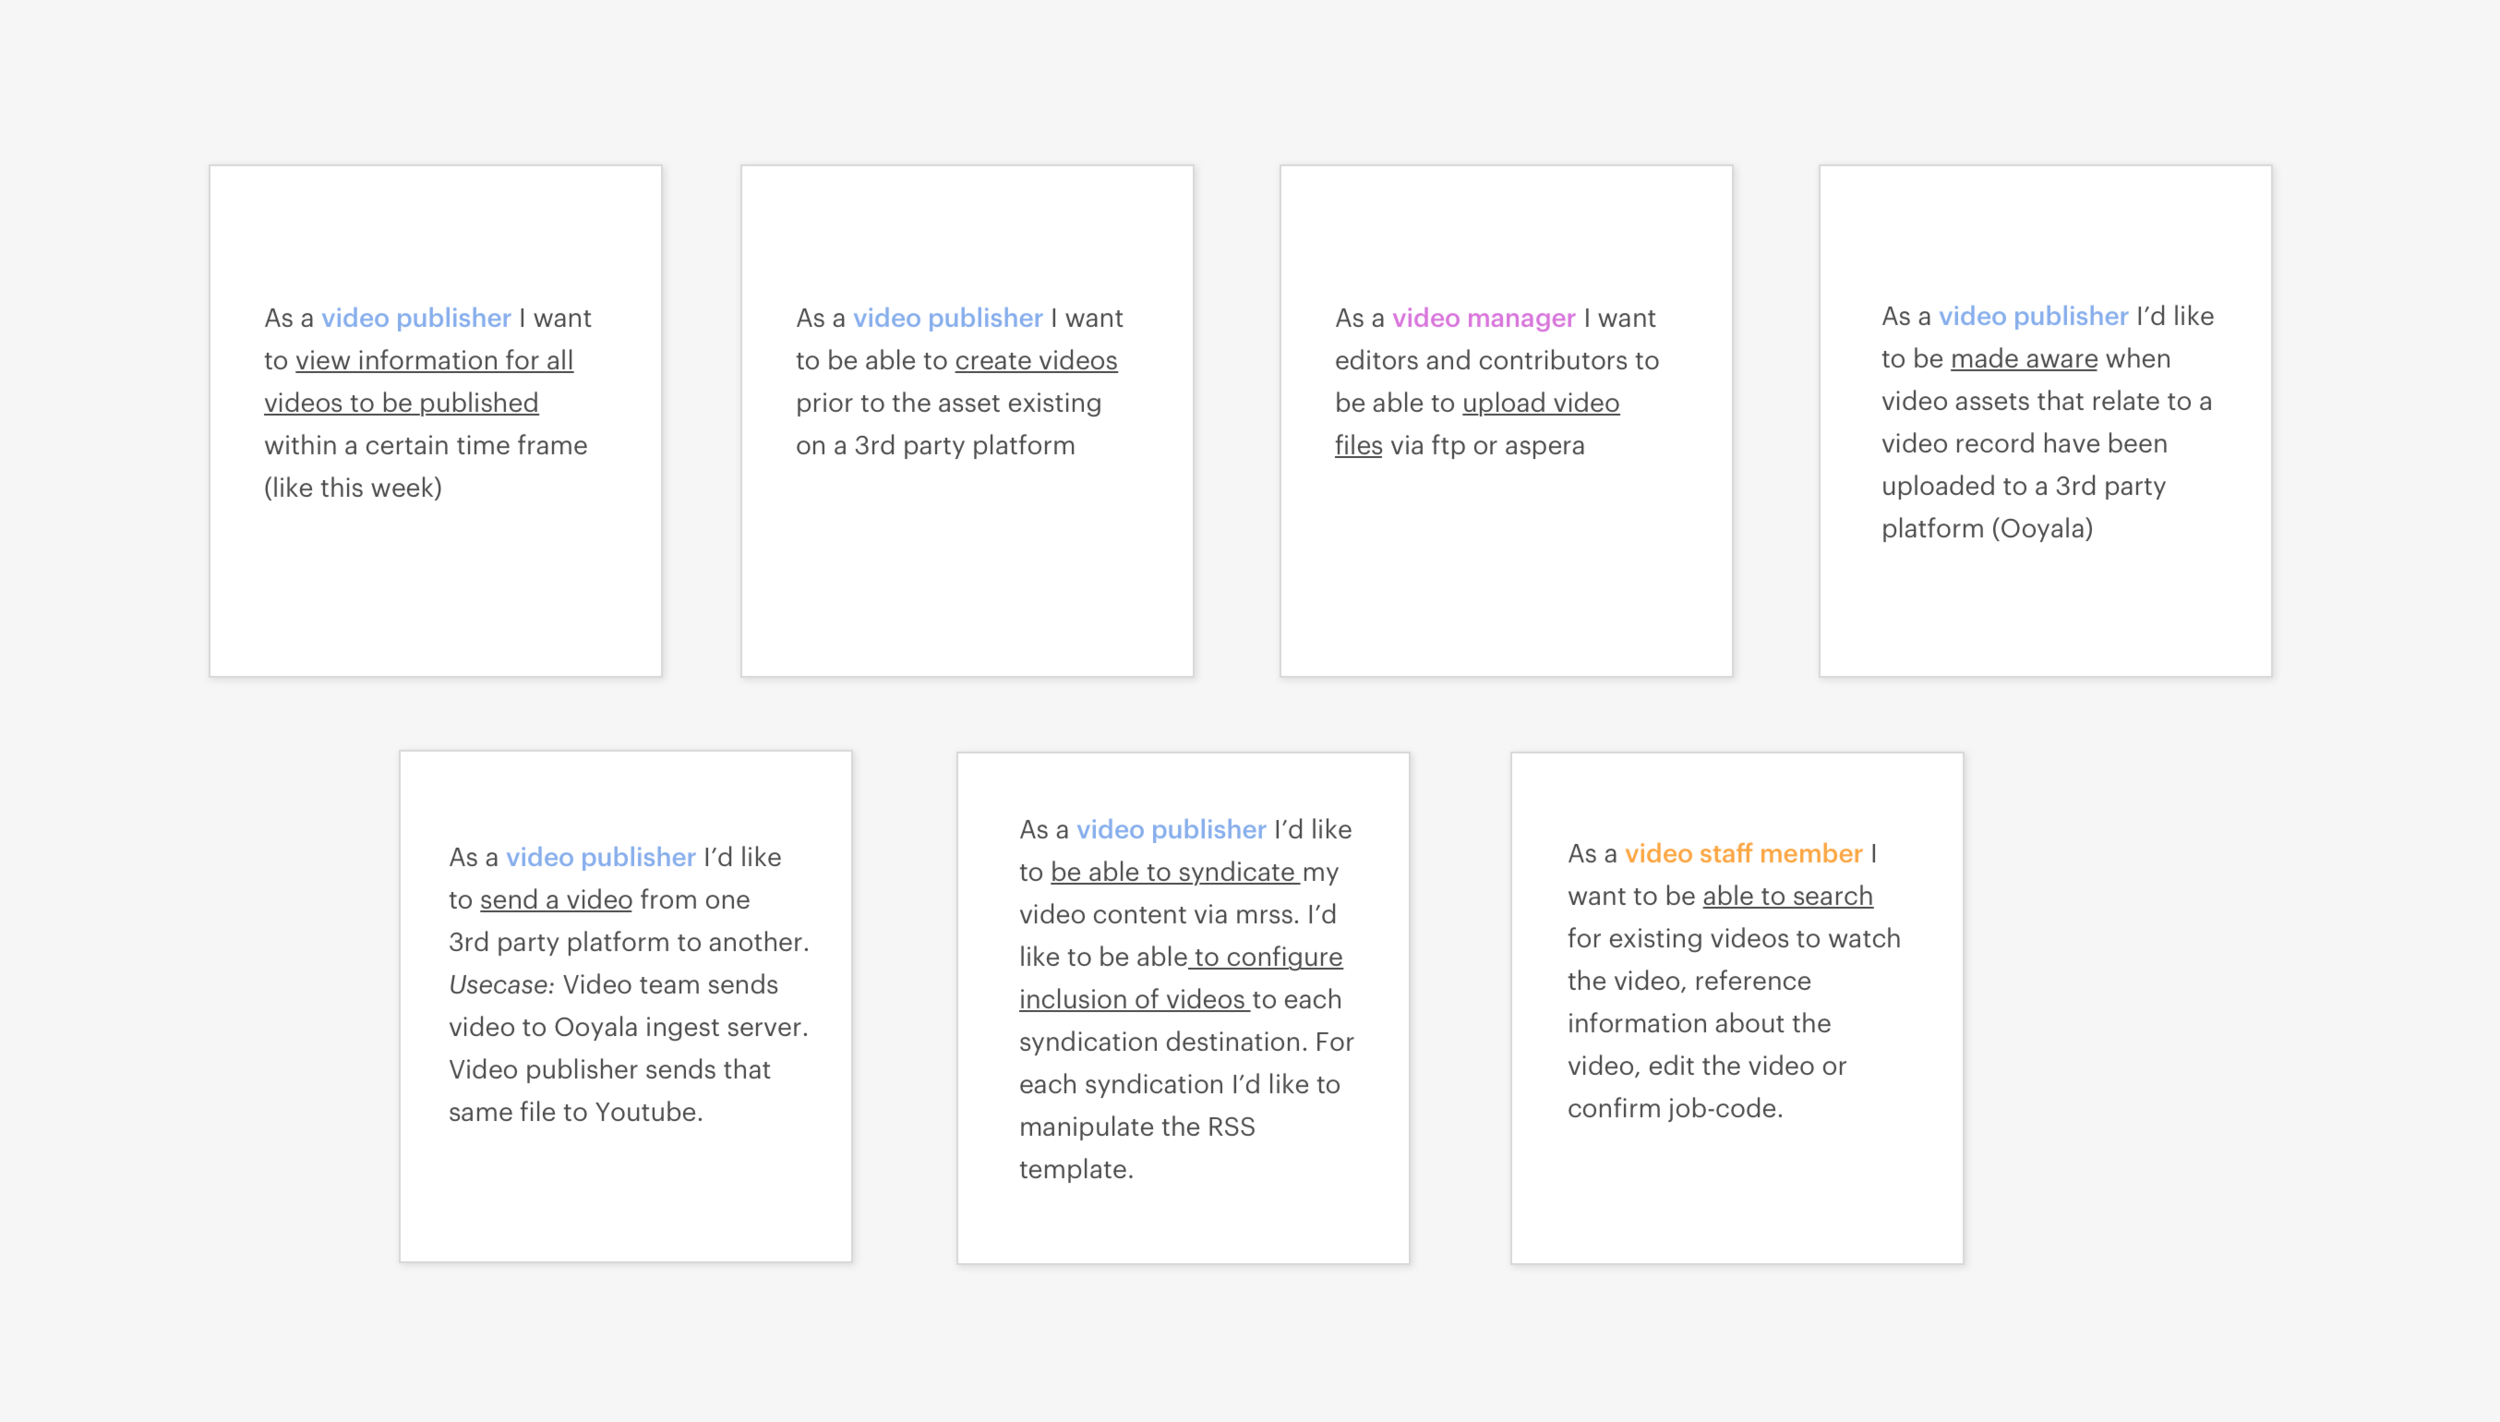 ^ A selection of user story highlights from interviews